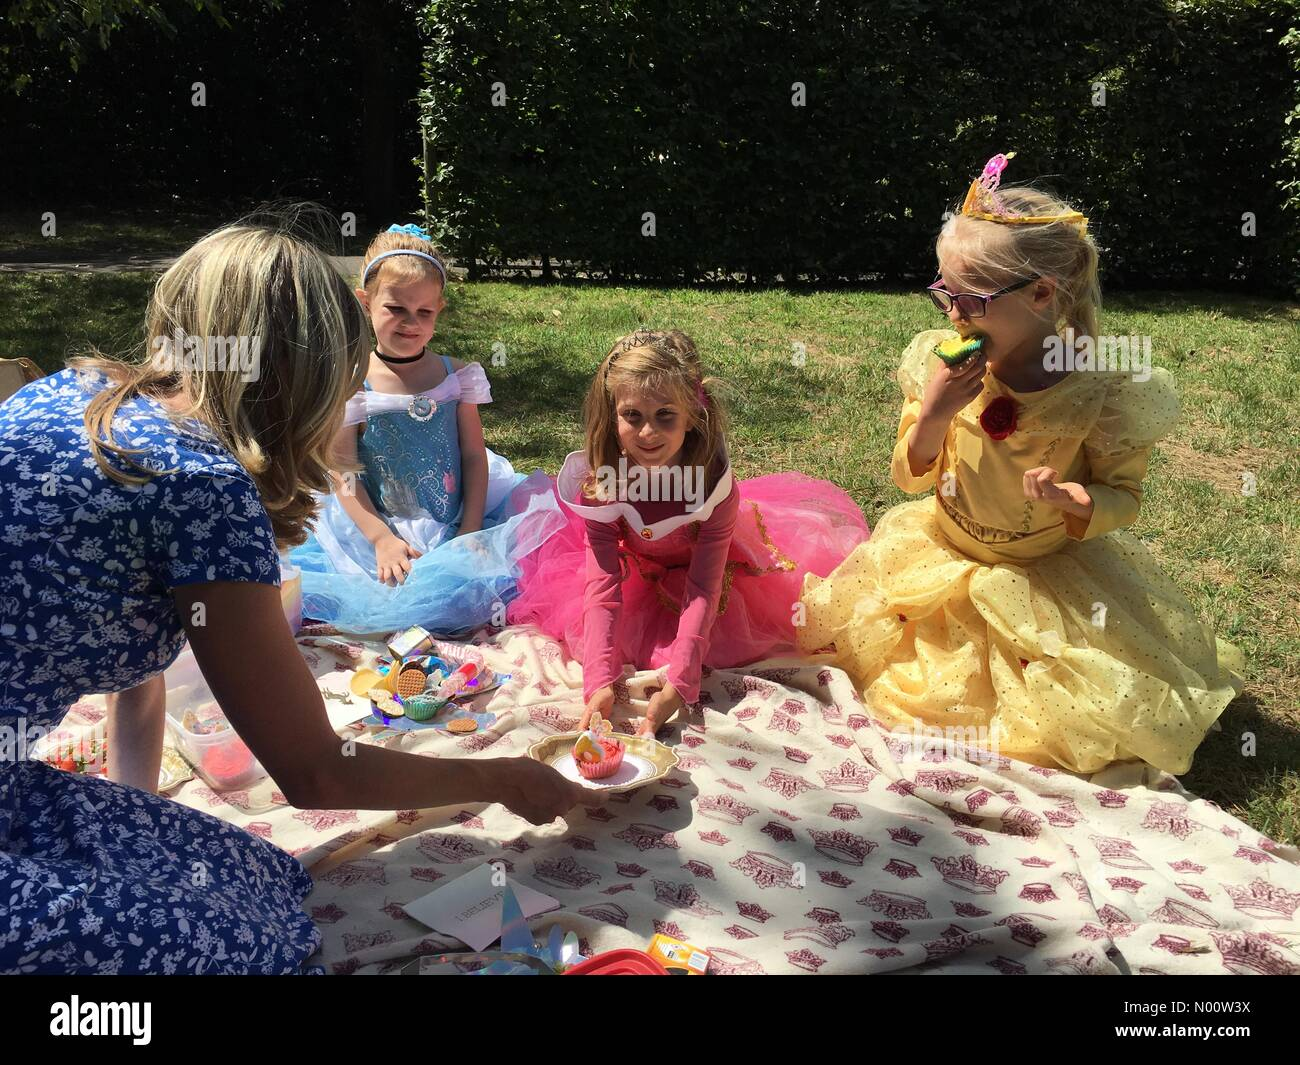 Hampton Court, Greater London, England UK 28th July 2018 Cecily (in pink) from London turns six years old today at the gardens of Hampton Court Palace. (written parental permission granted) Stock Photo